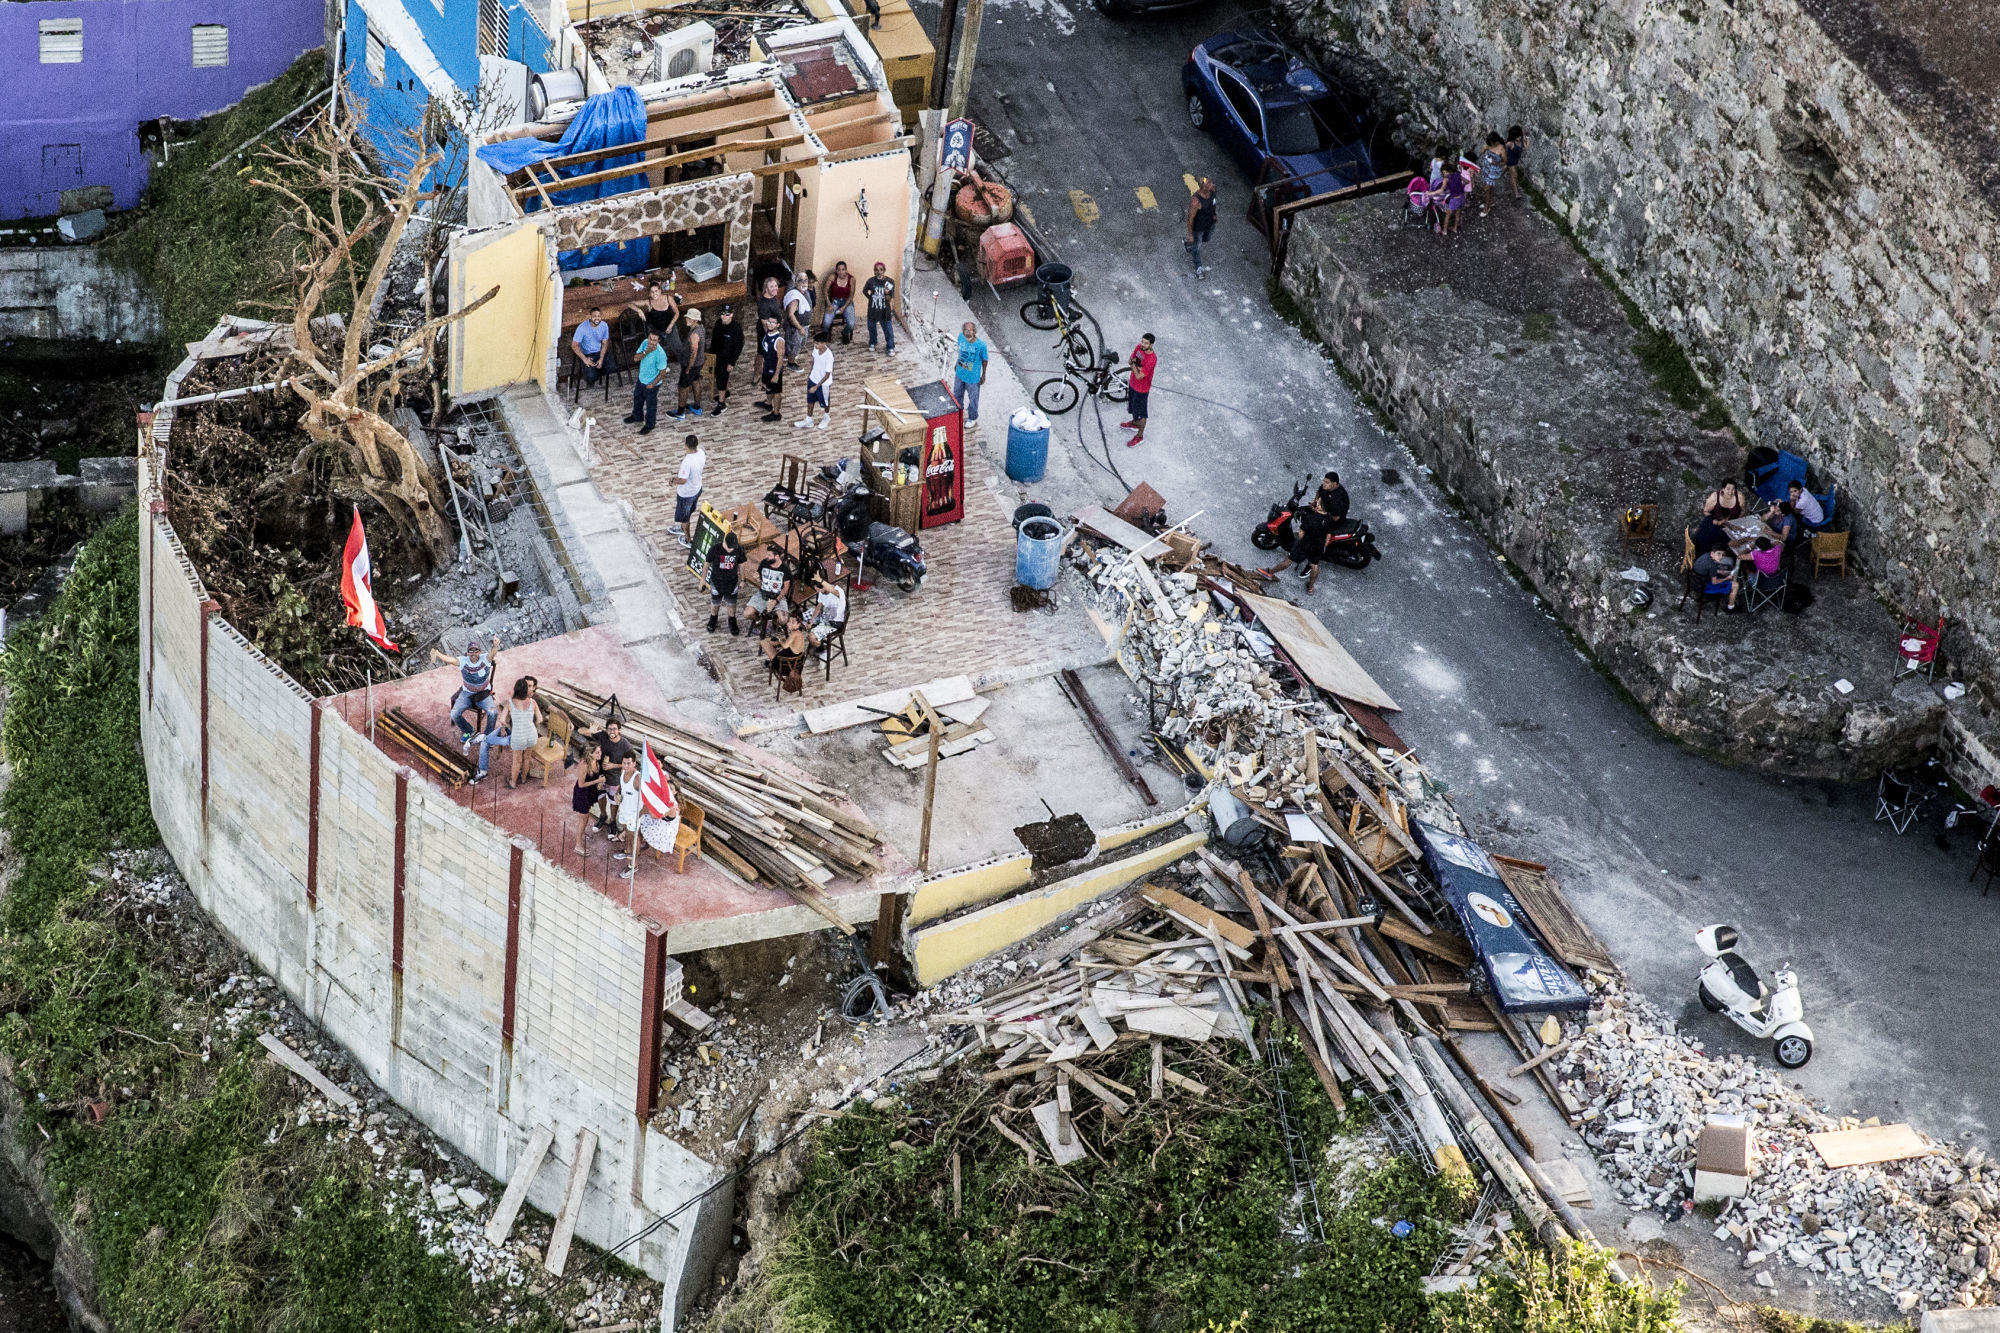 People stand in a bar damaged from Hurricane Maria in this aerial photograph taken above La Perla, San Juan, Puerto Rico, on Monday, Sept. 25, 2017. Photographer: Alex Wroblewski/Bloomberg